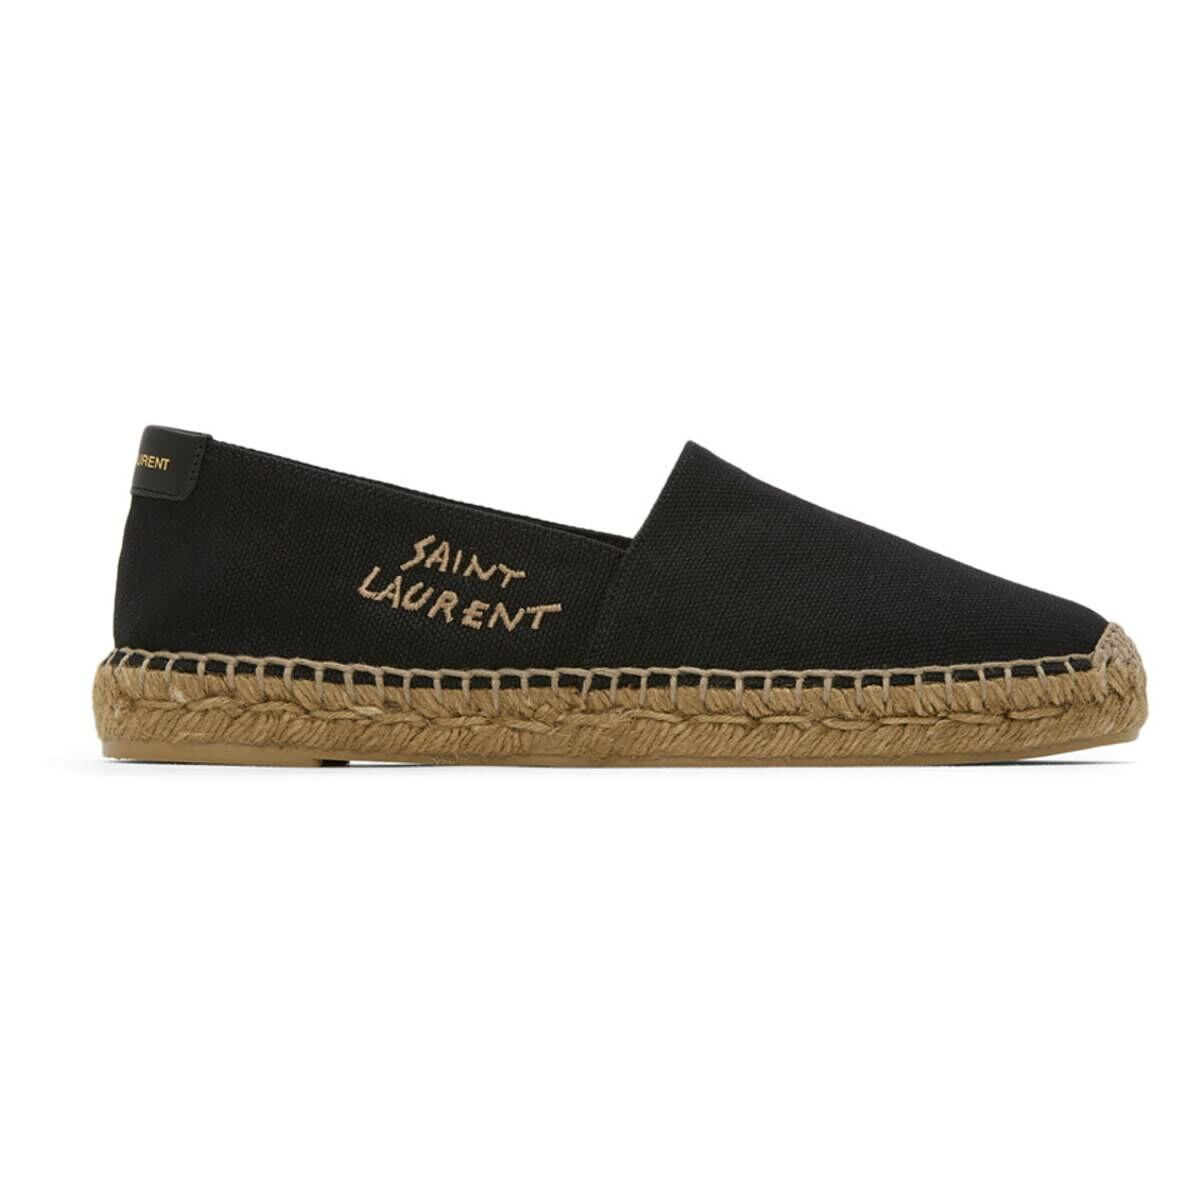 Saint Laurent Black Embroidered Logo Espadrilles Ssense USA MEN Men SHOES Mens LOAFERS